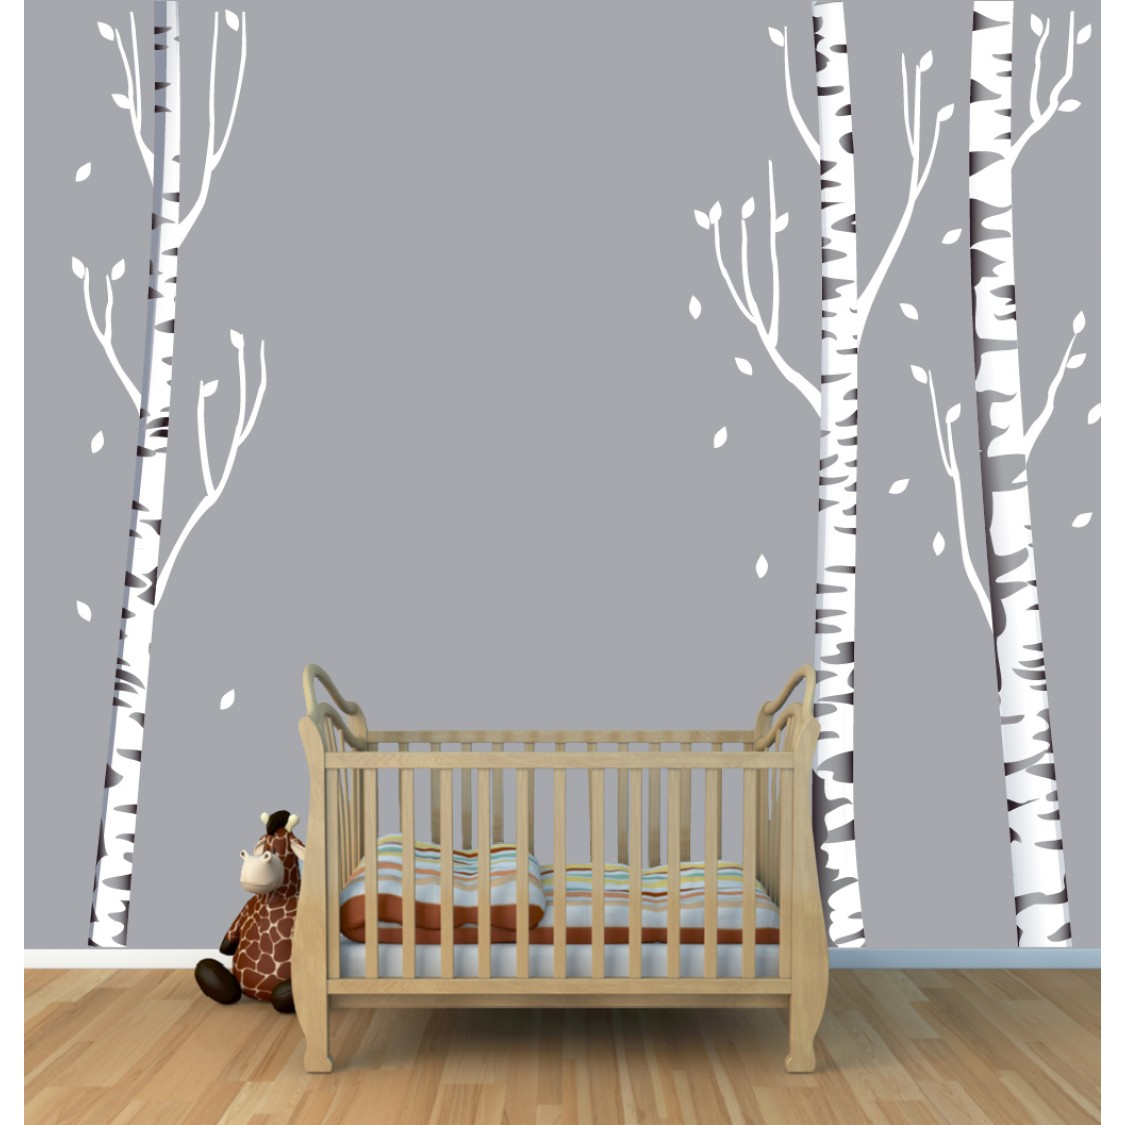 Tree Wall Art With Birch Decals For Kids Rooms